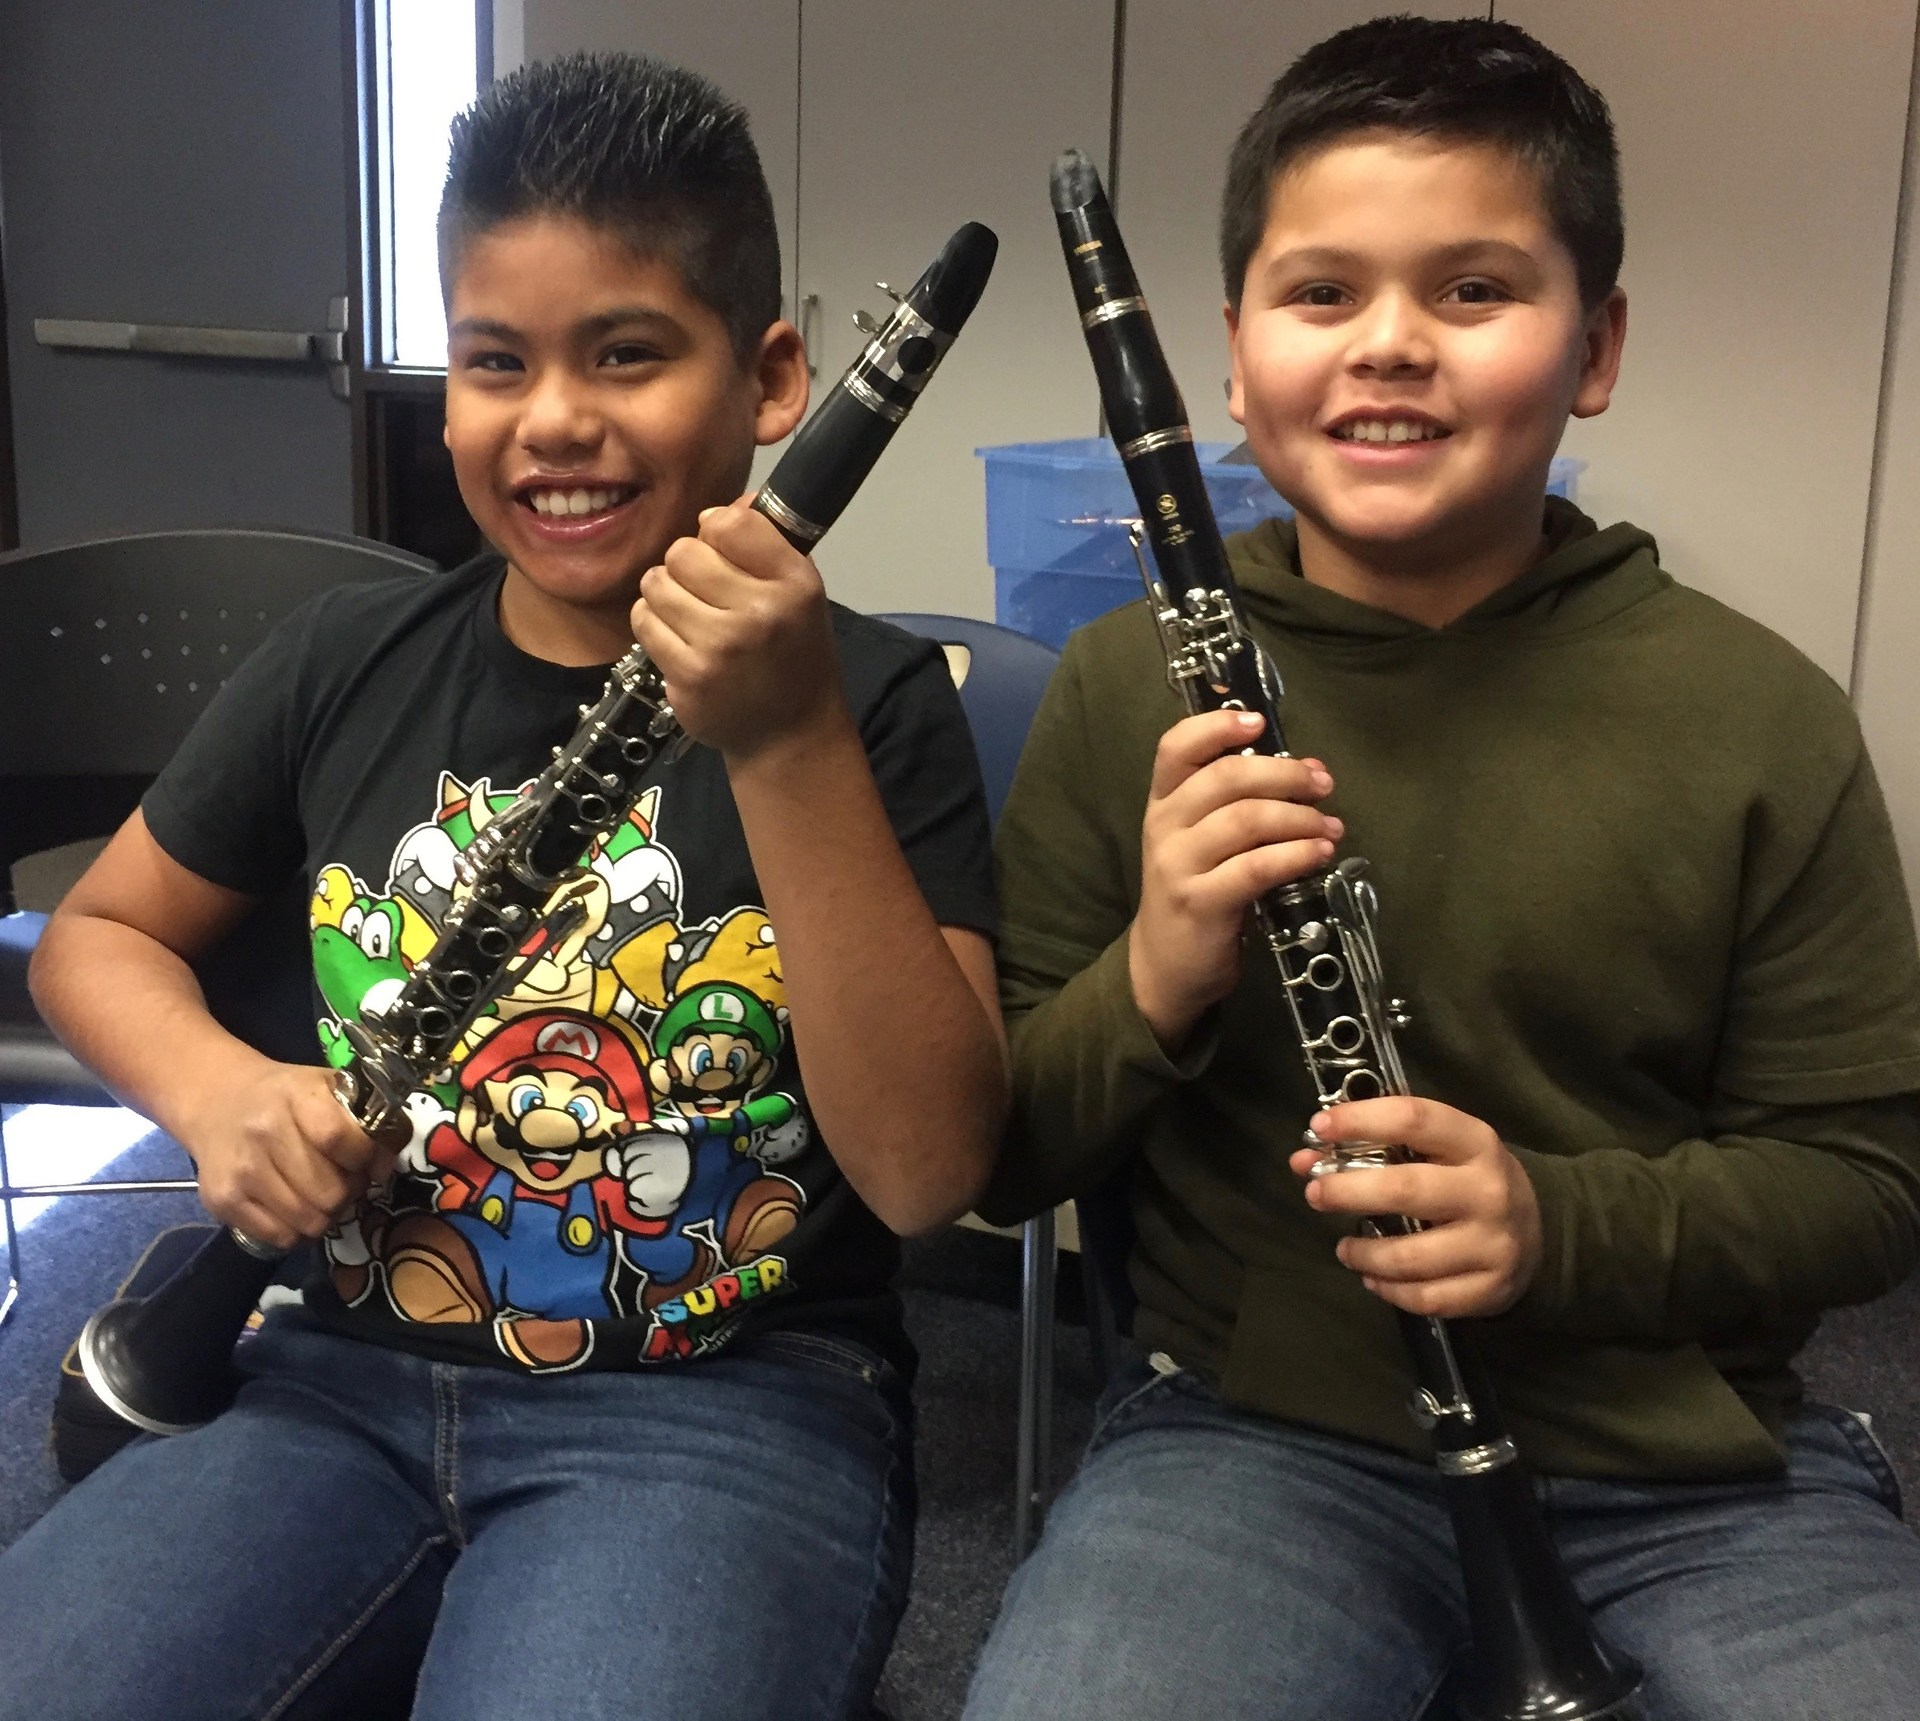 Two boys showing their clarinets.